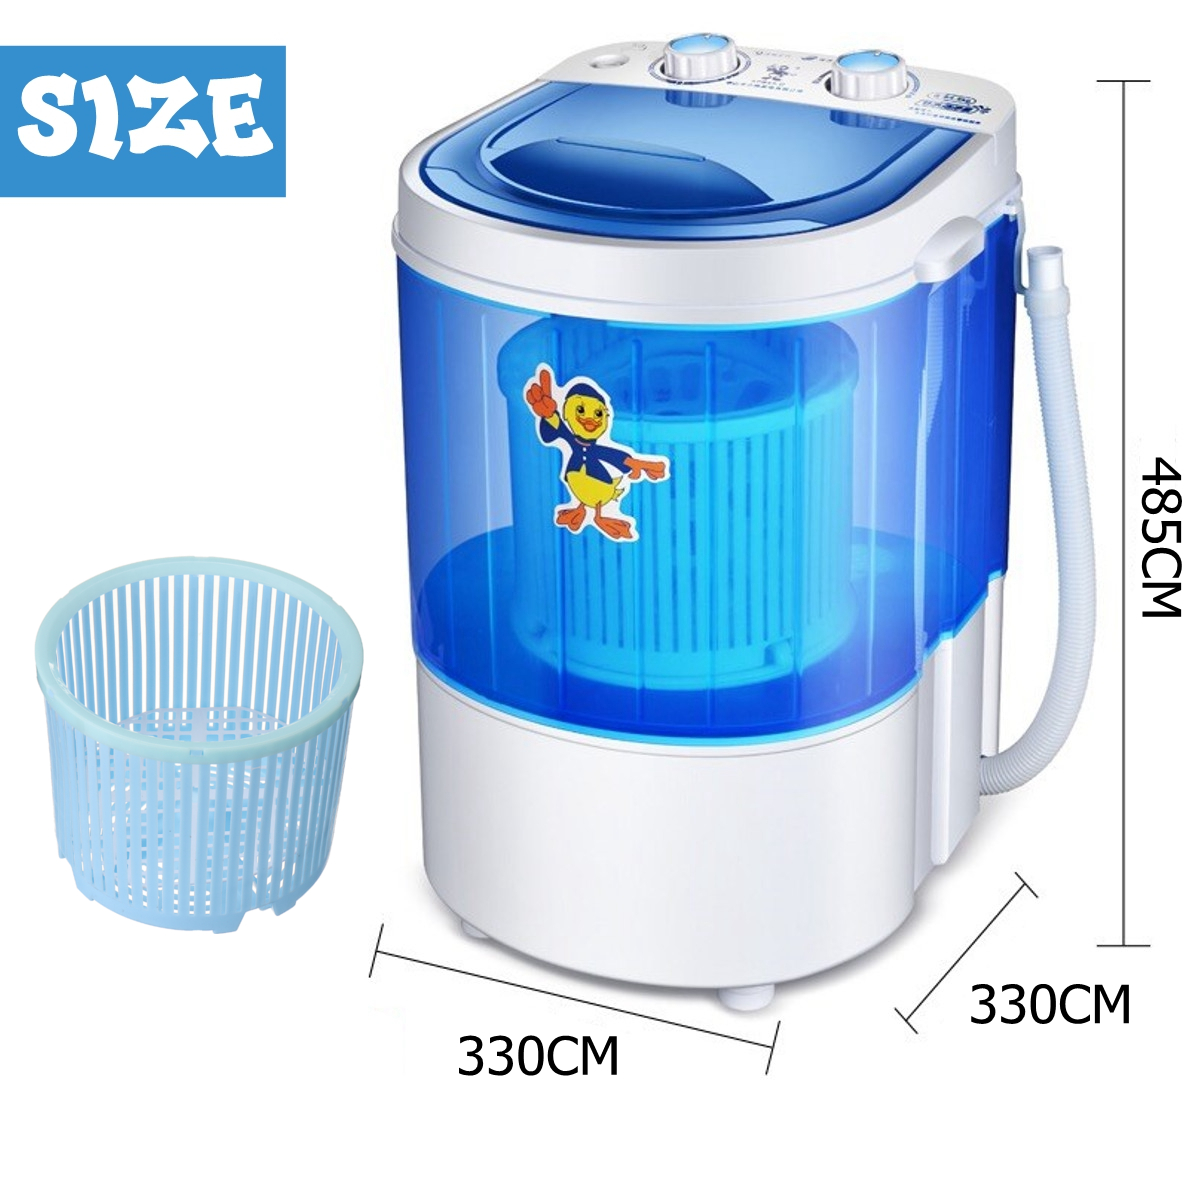 Mini Washing Machine Semi-automatic Single-barrel Washer Prevent Winding Wave Wheel Laundry Product for Bathroom